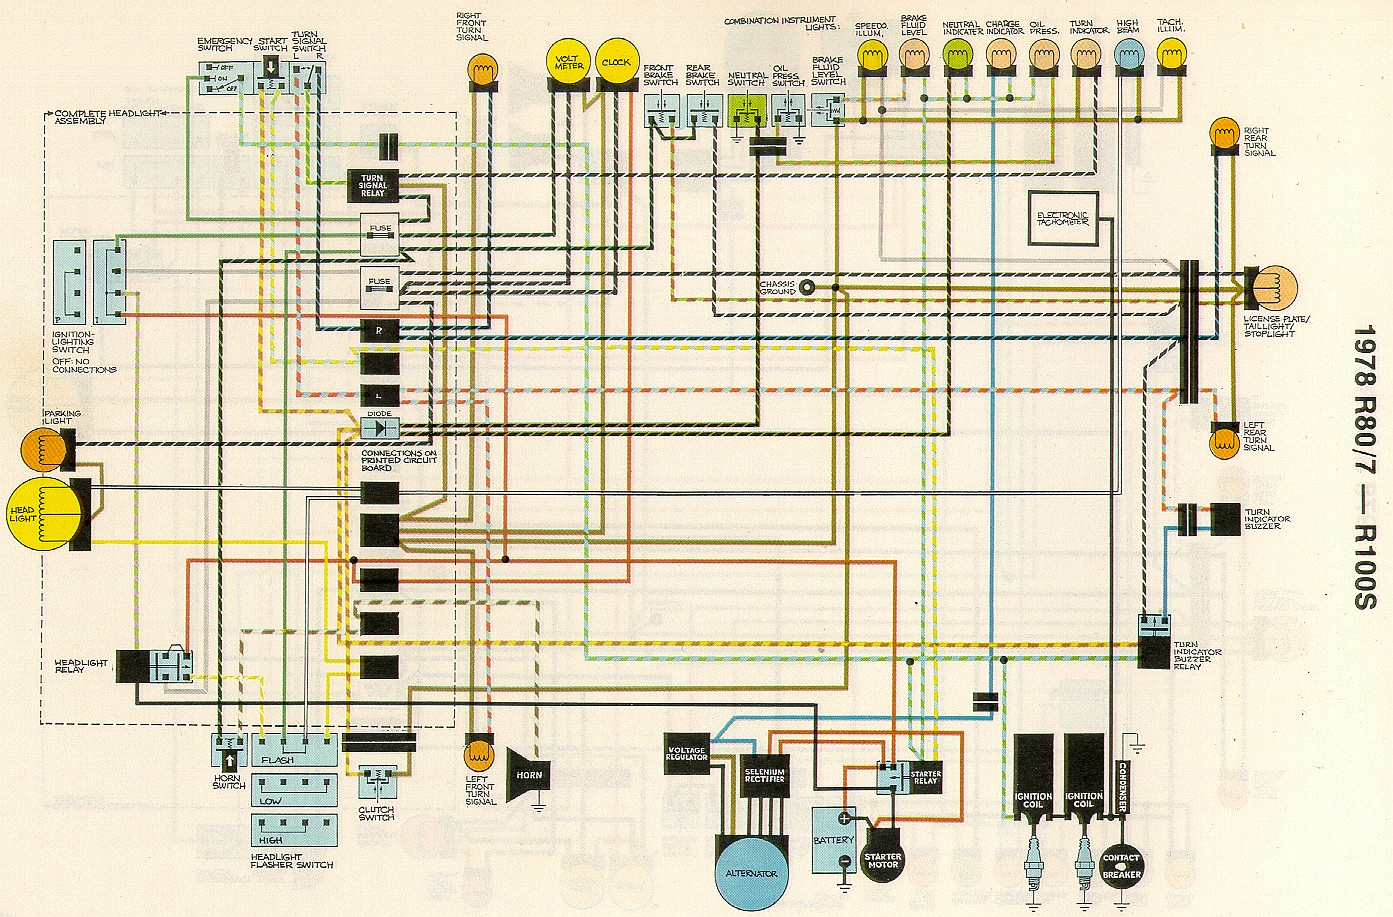 78 bmw r80 wiring diagram bmw suspension diagrams \u2022 wiring diagrams 1979 volvo 242 dl wiring diagram at aneh.co